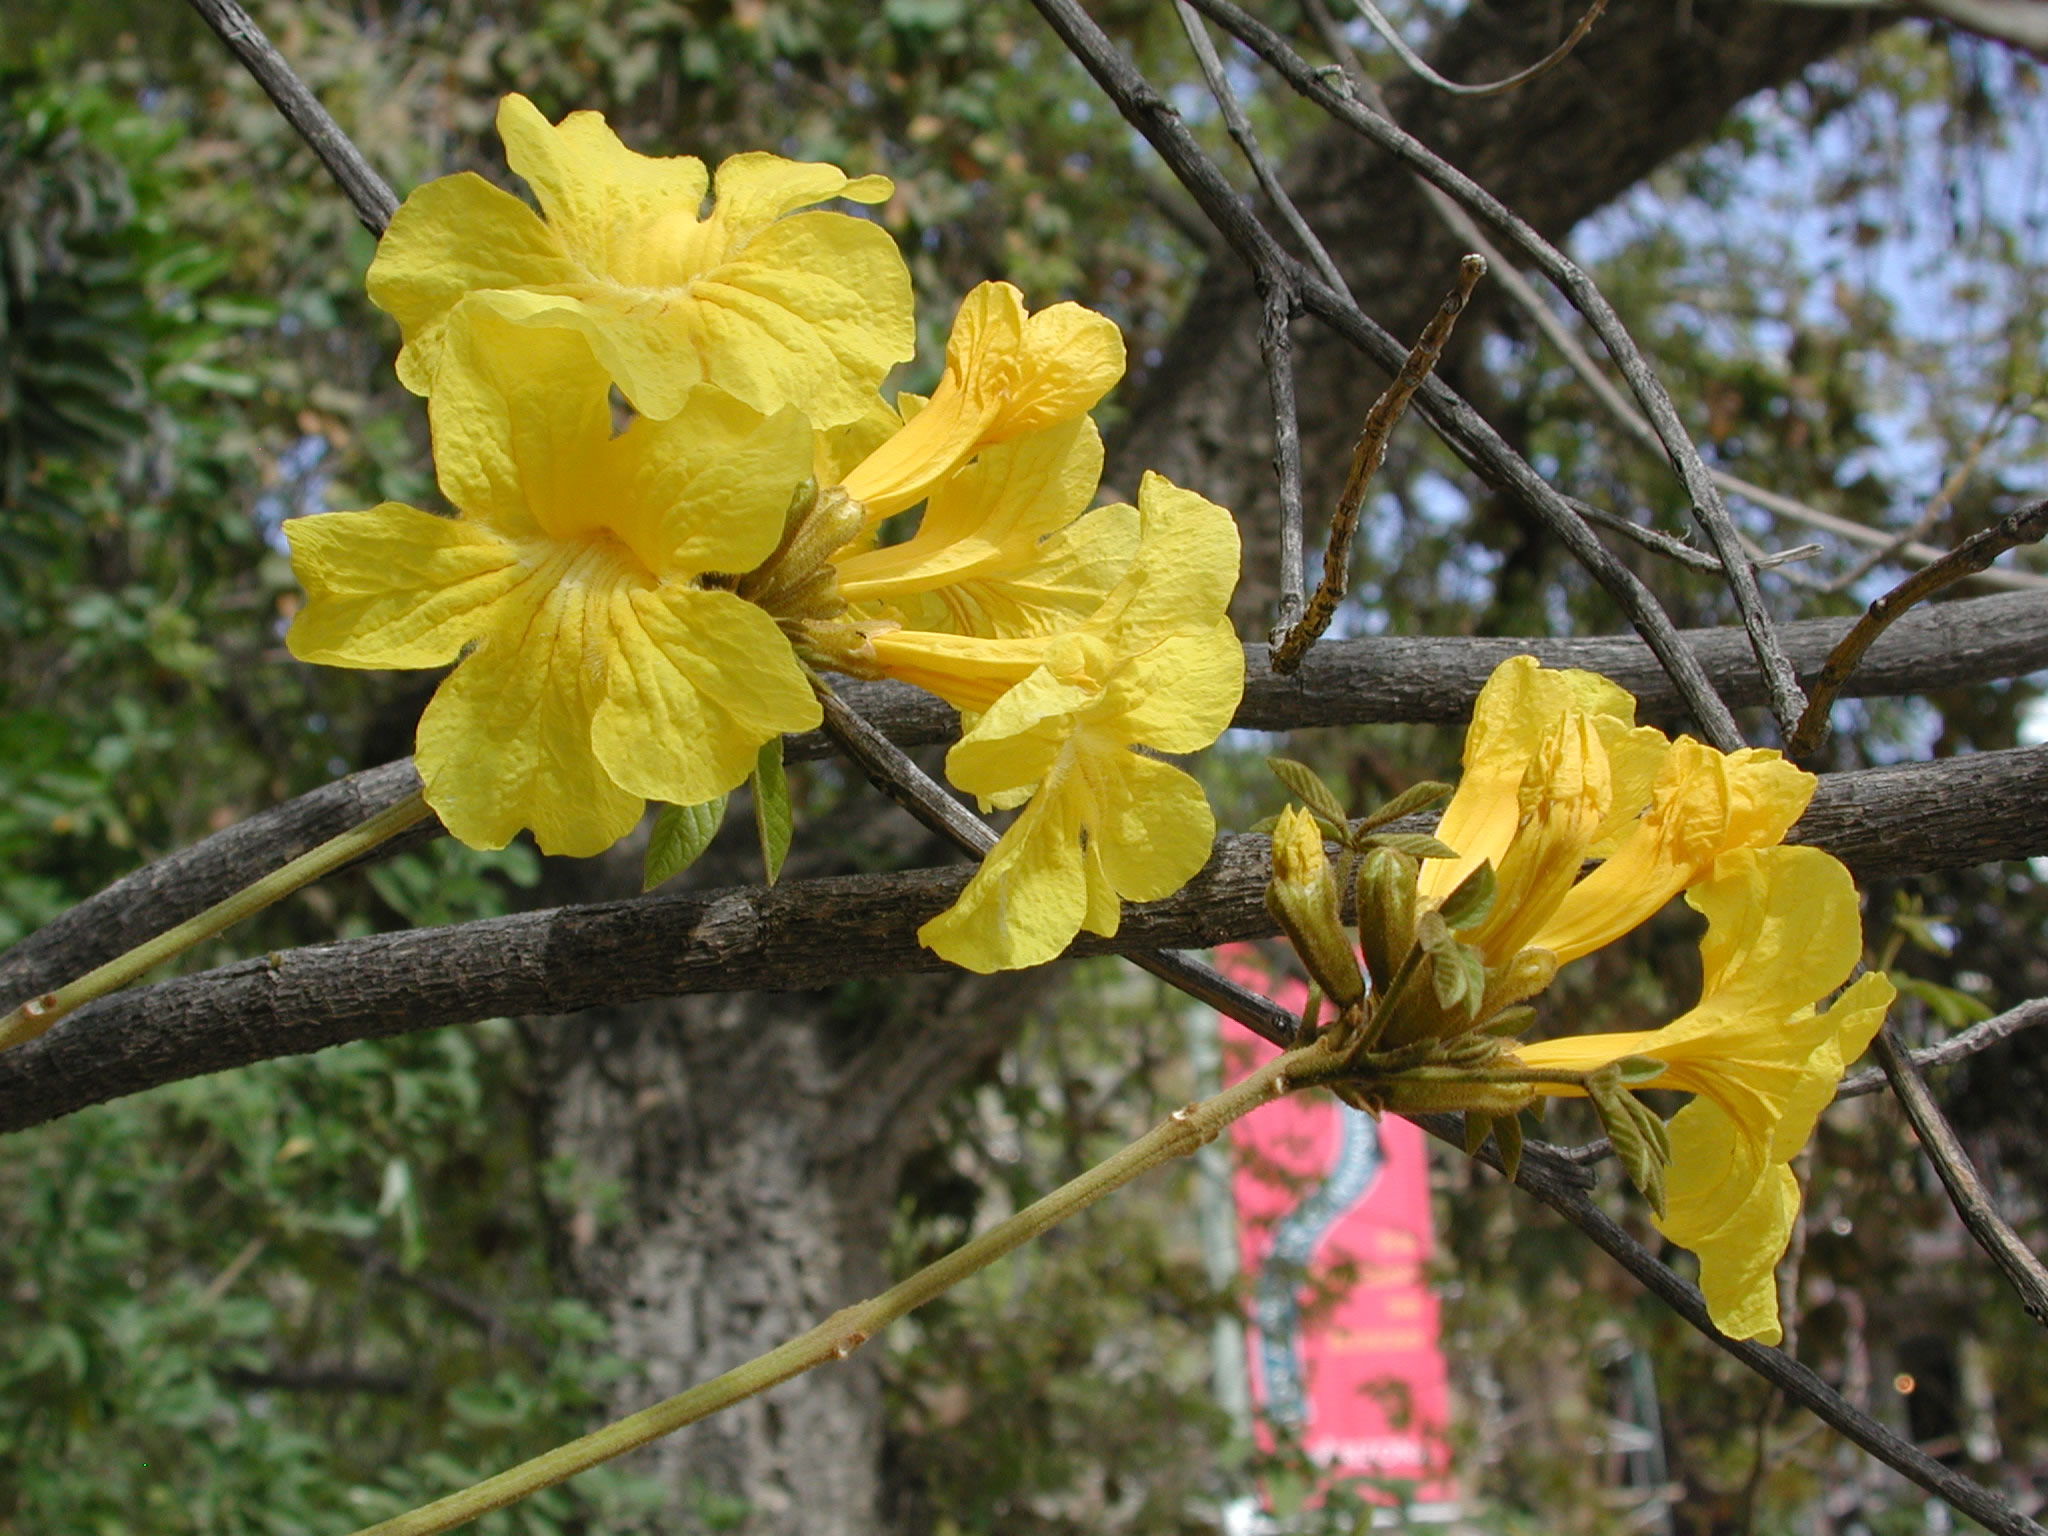 Spring blooms university of arizona campus arboretum tabebuia chrysotricha border style solid padding 5px mightylinksfo Image collections